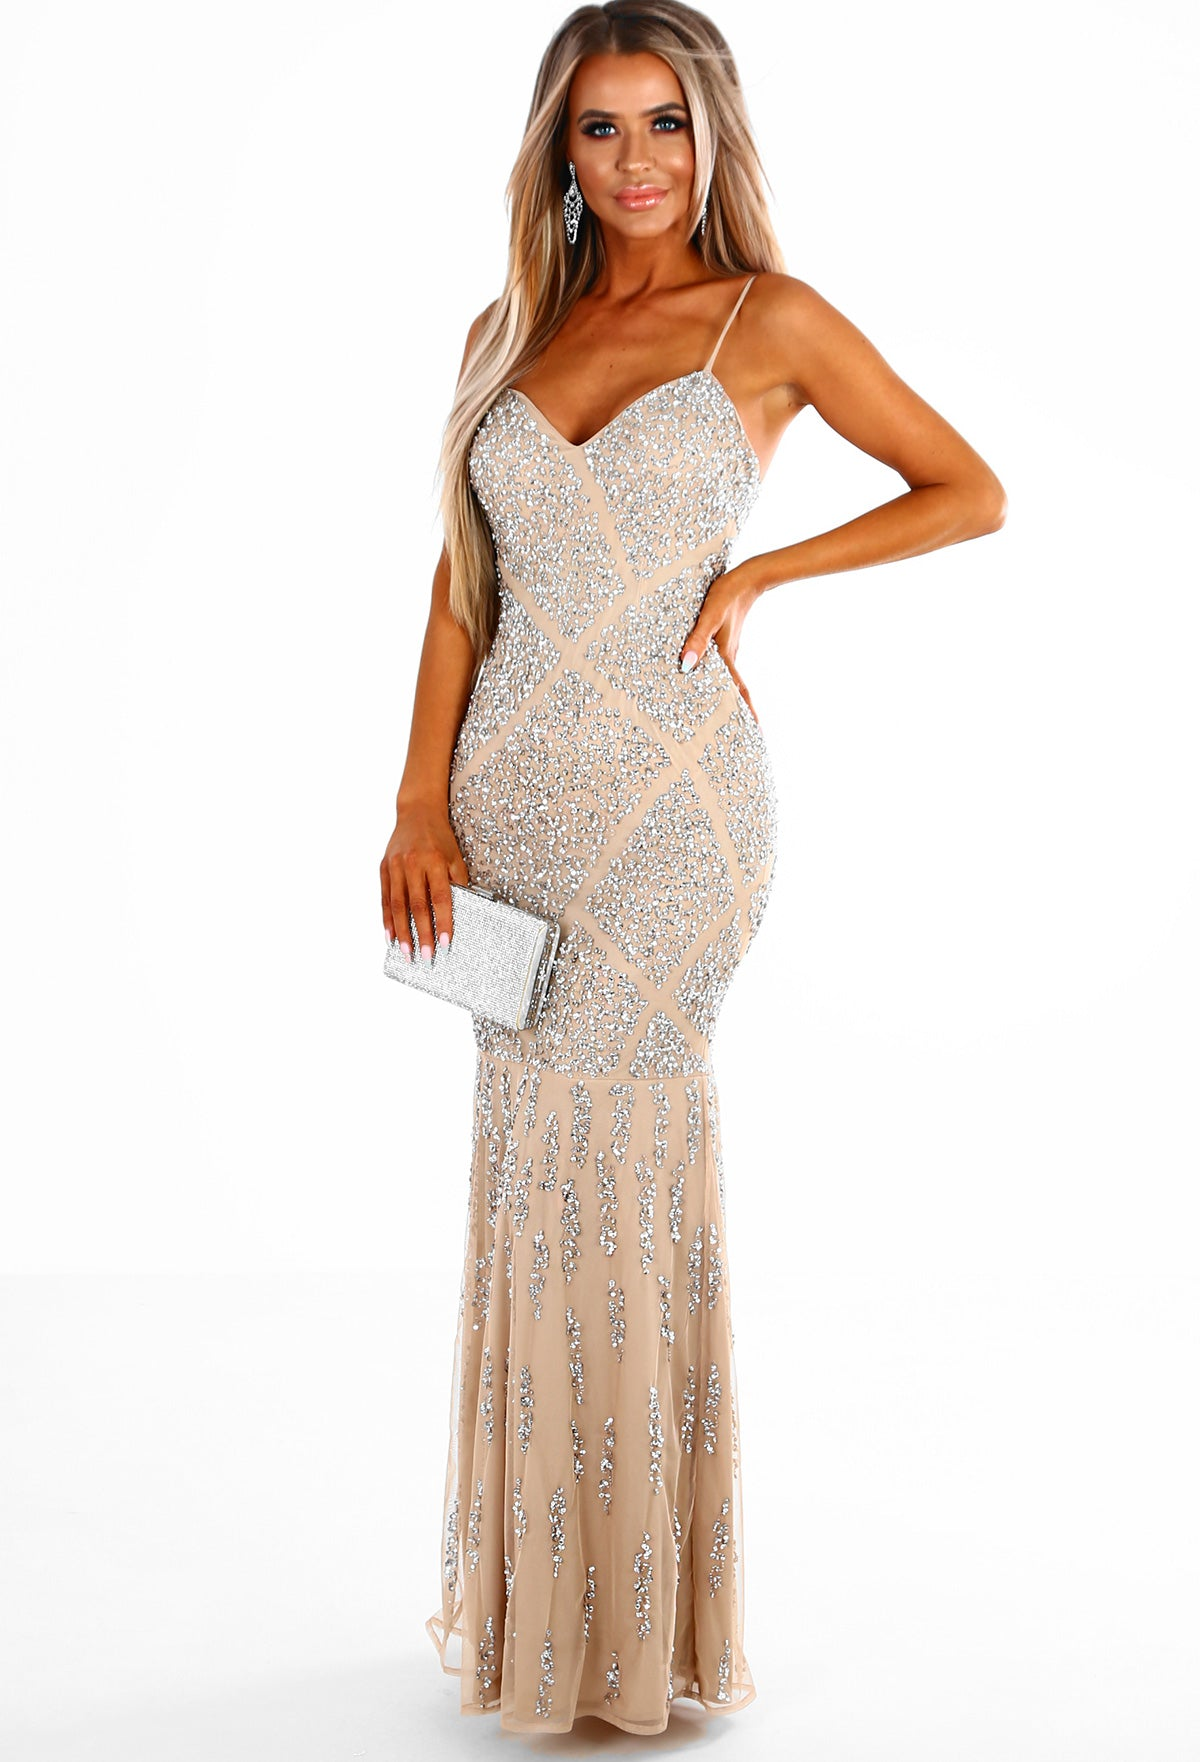 803dd9c9 PREMIUM Modern Beauty Nude and Silver Embellished Fishtail Maxi Dress